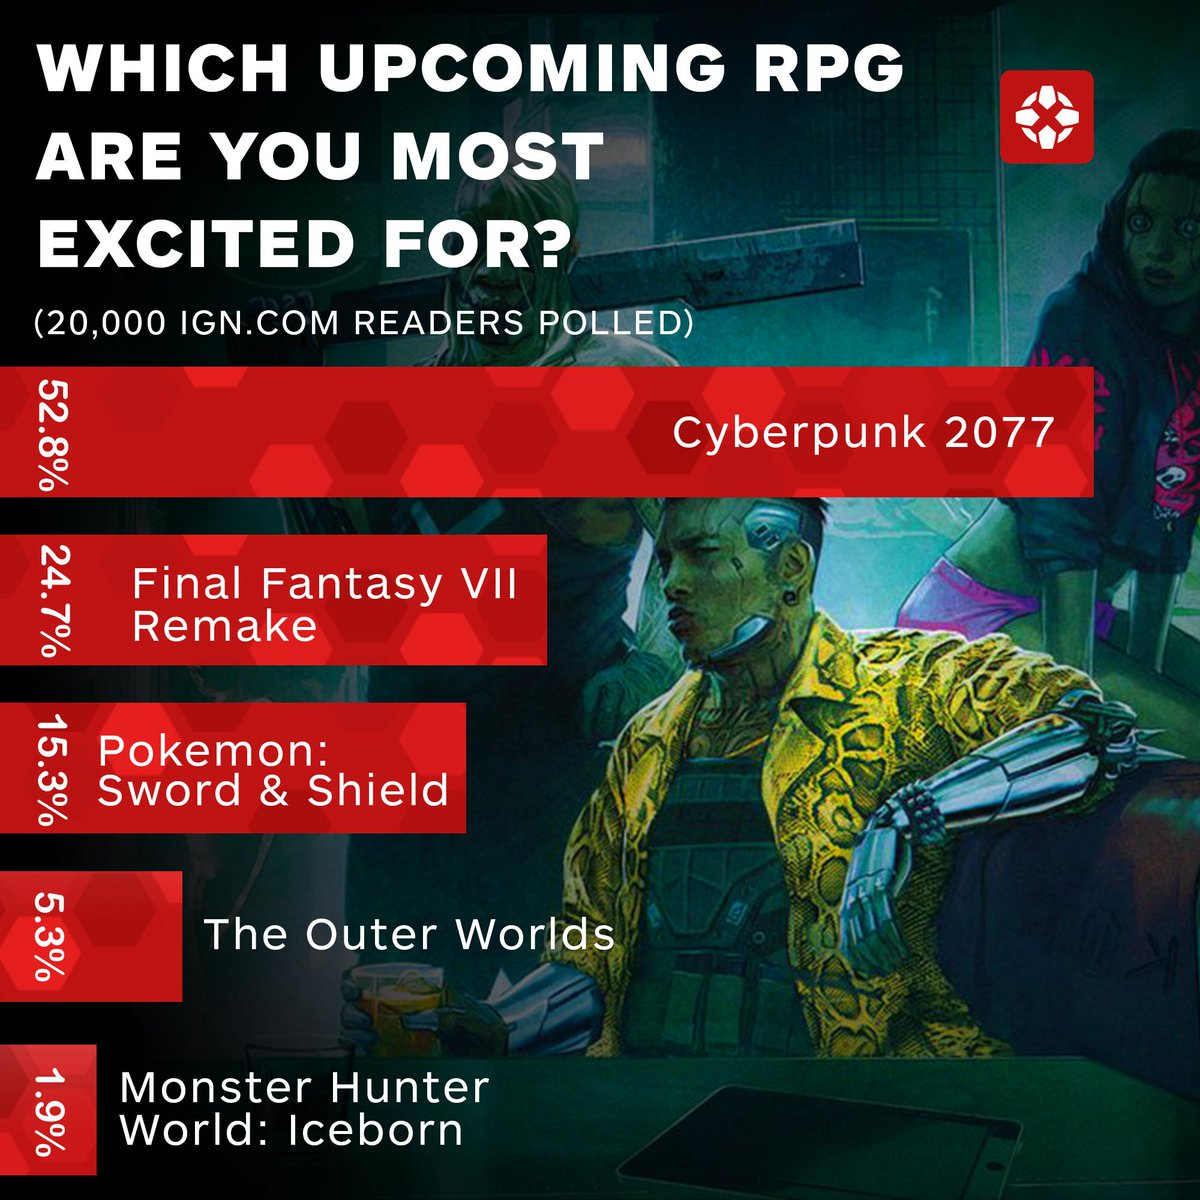 No contest. Cyberpunk 2077 is the most anticipated RPG.